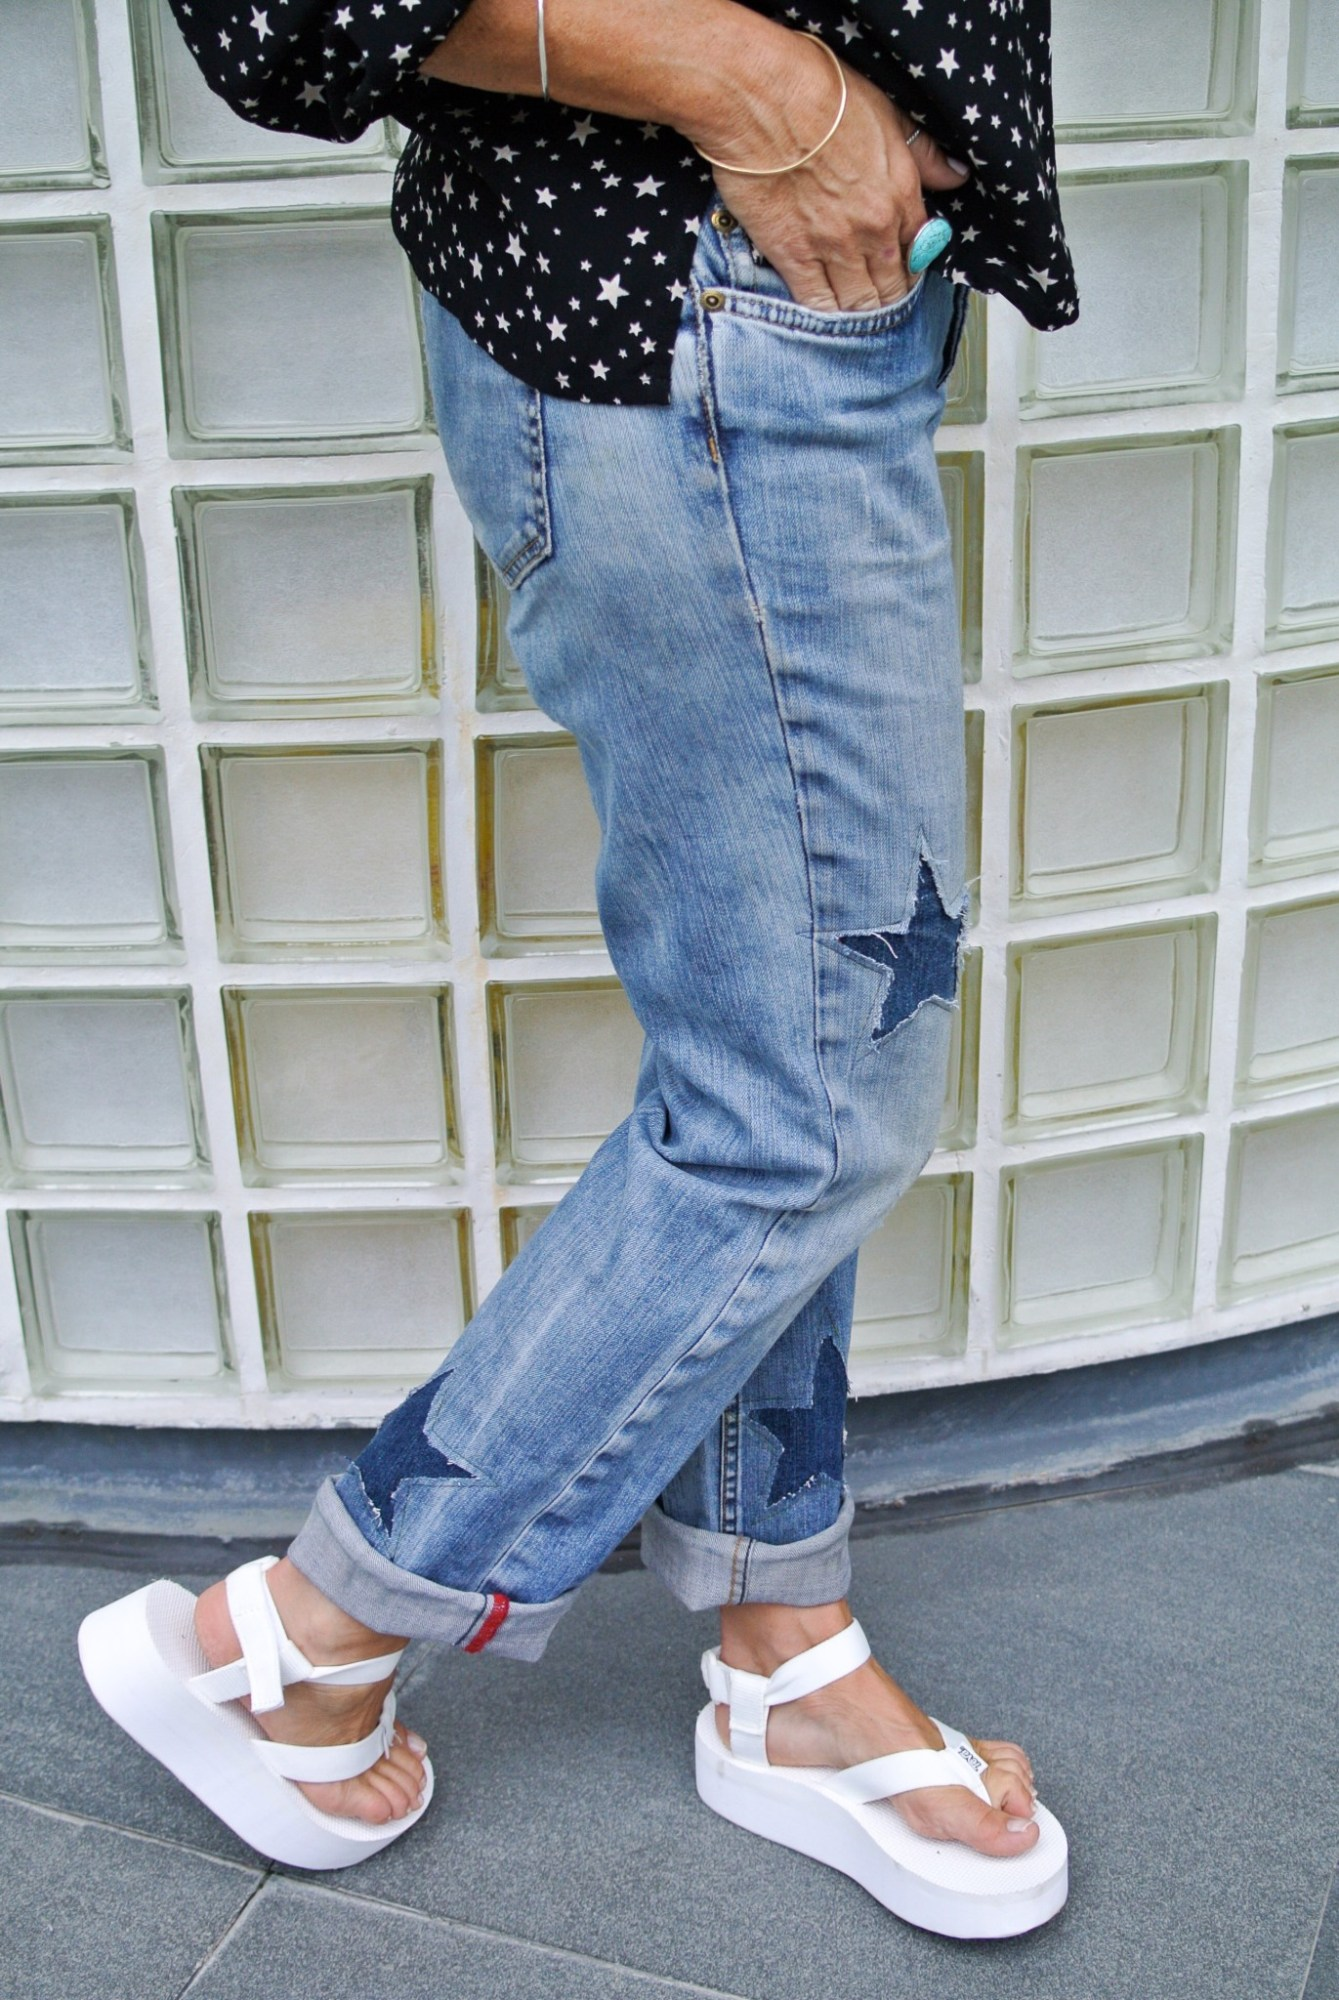 DIY Star Patched Jeans 4